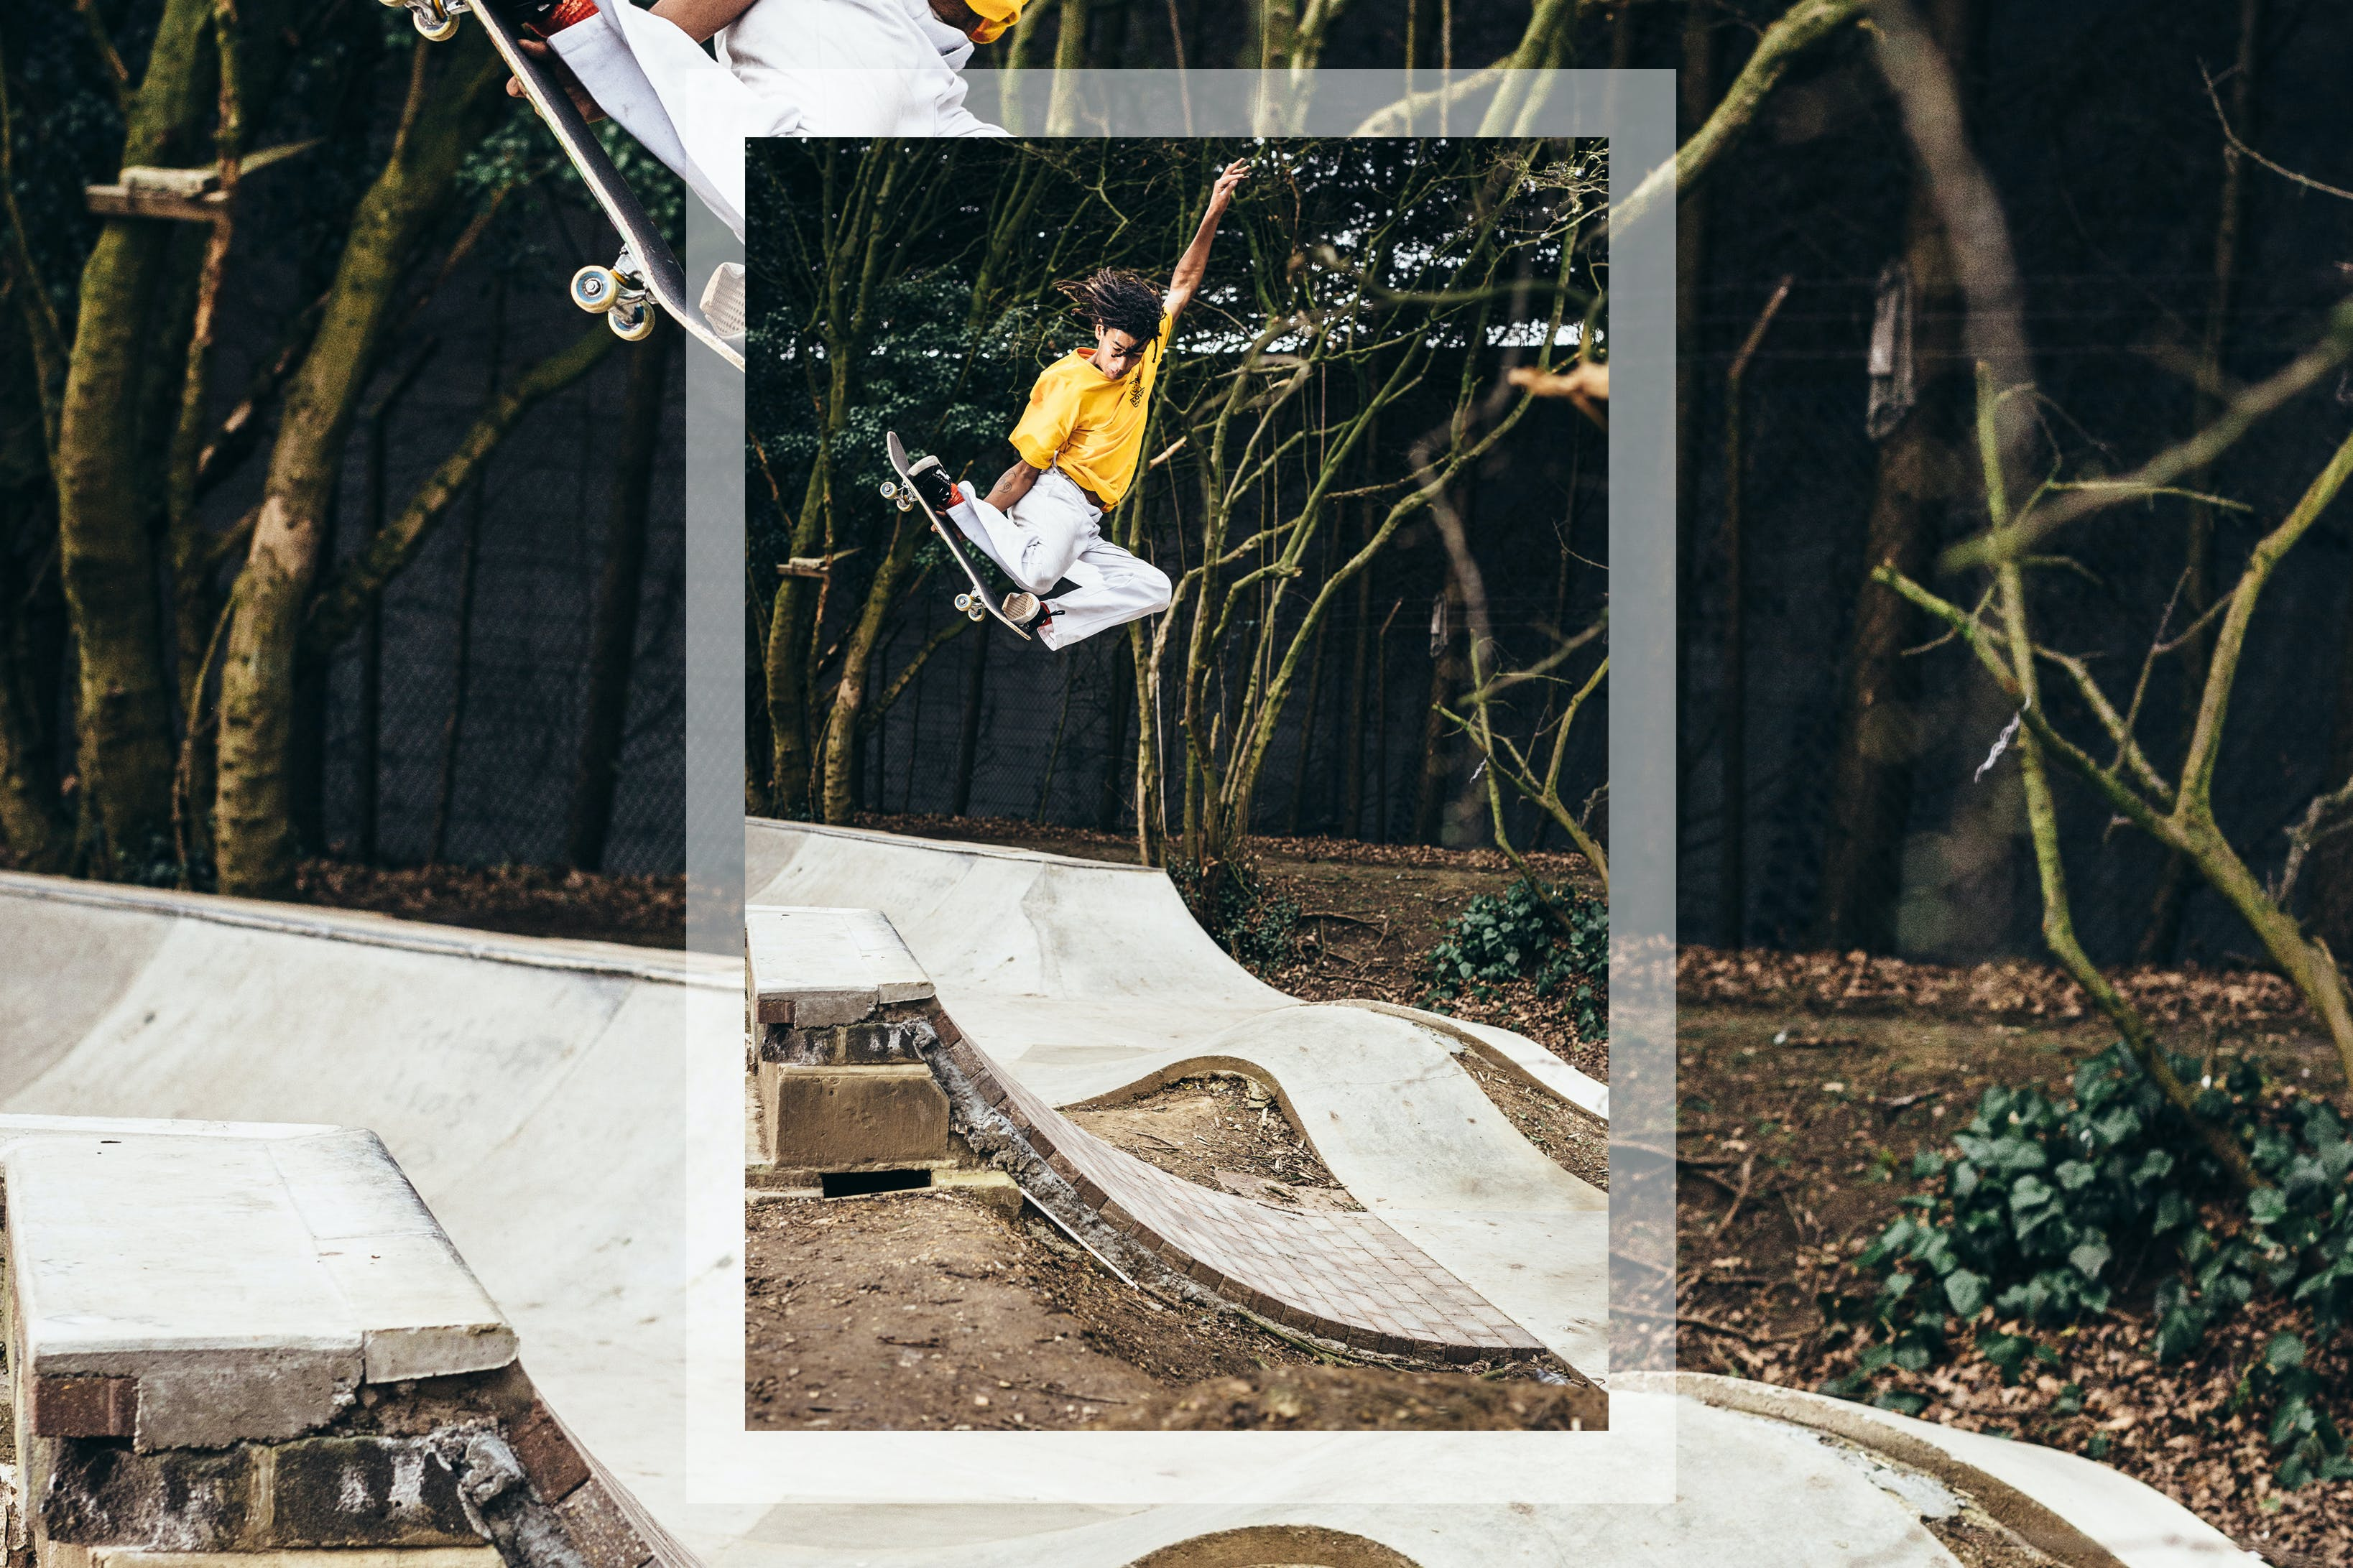 jordan thackeray stalefish welcome to route one skate team